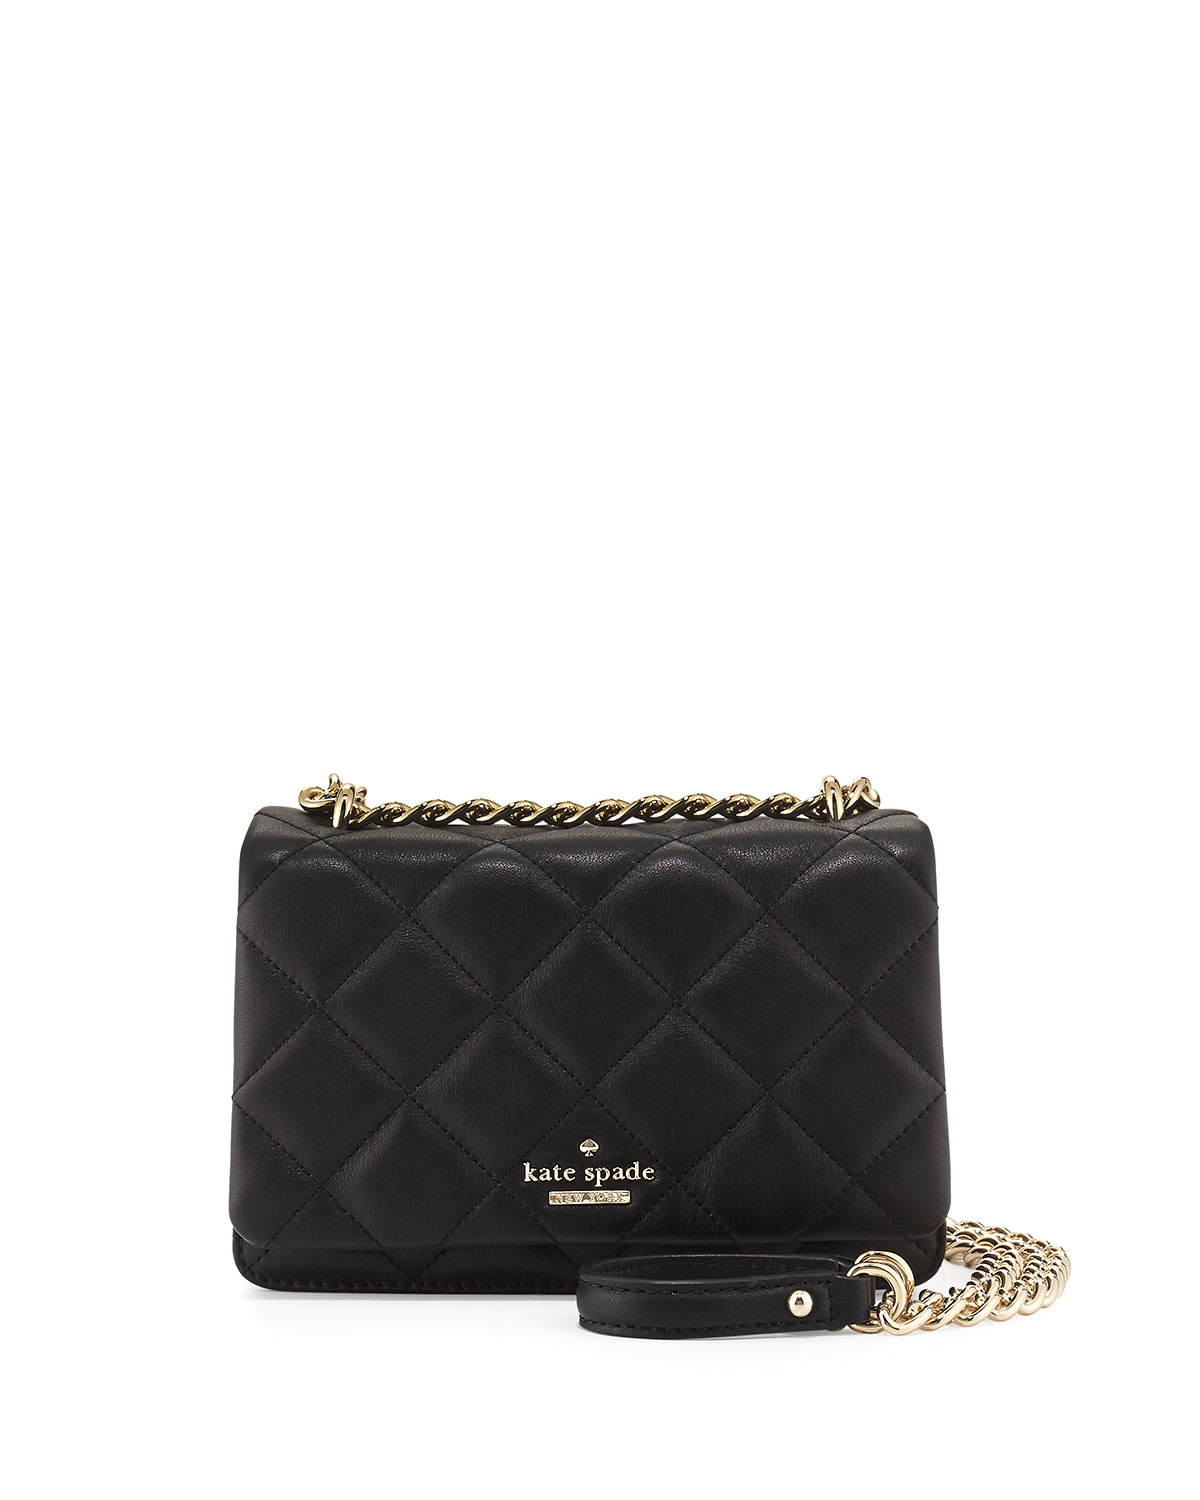 Lyst - Kate Spade Emerson Place Vivenna Mini Crossbody Bag in Black 18738091b2